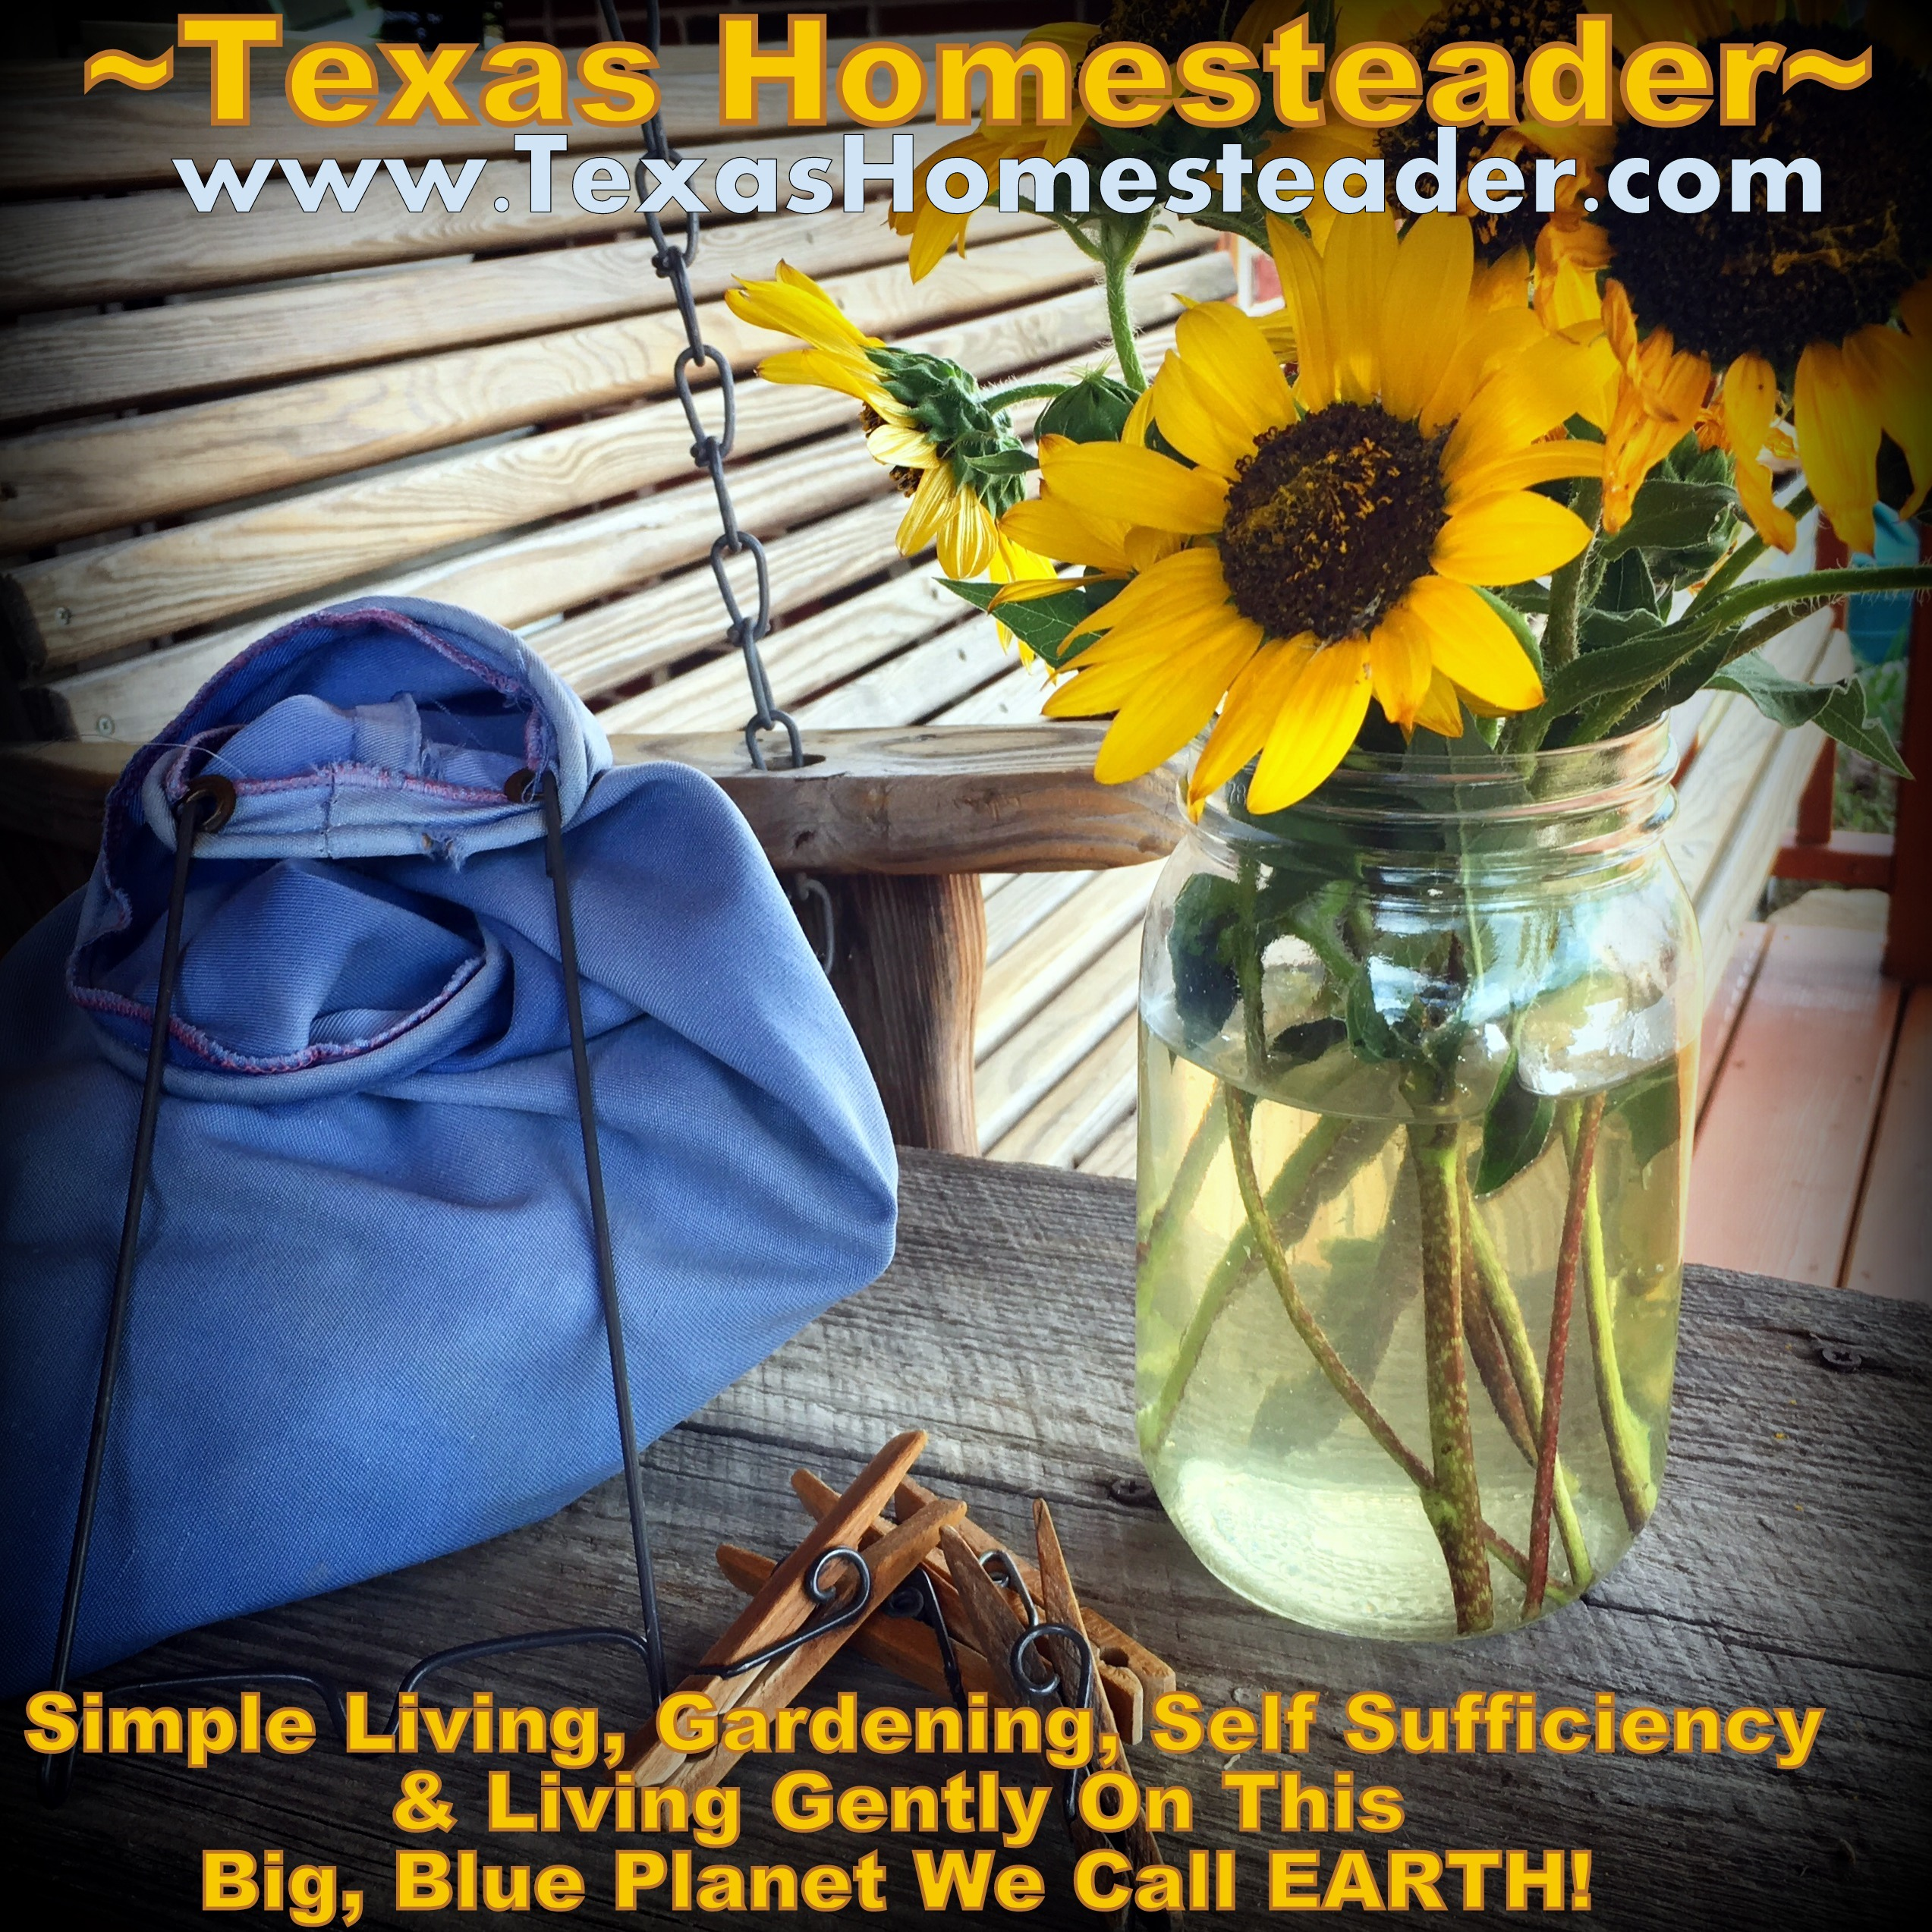 I love writing about our lives here on our NE Texas Homestead. My hope is that I can inspire others who are also on a simple path, won't you follow along? www.TexasHomesteader.com